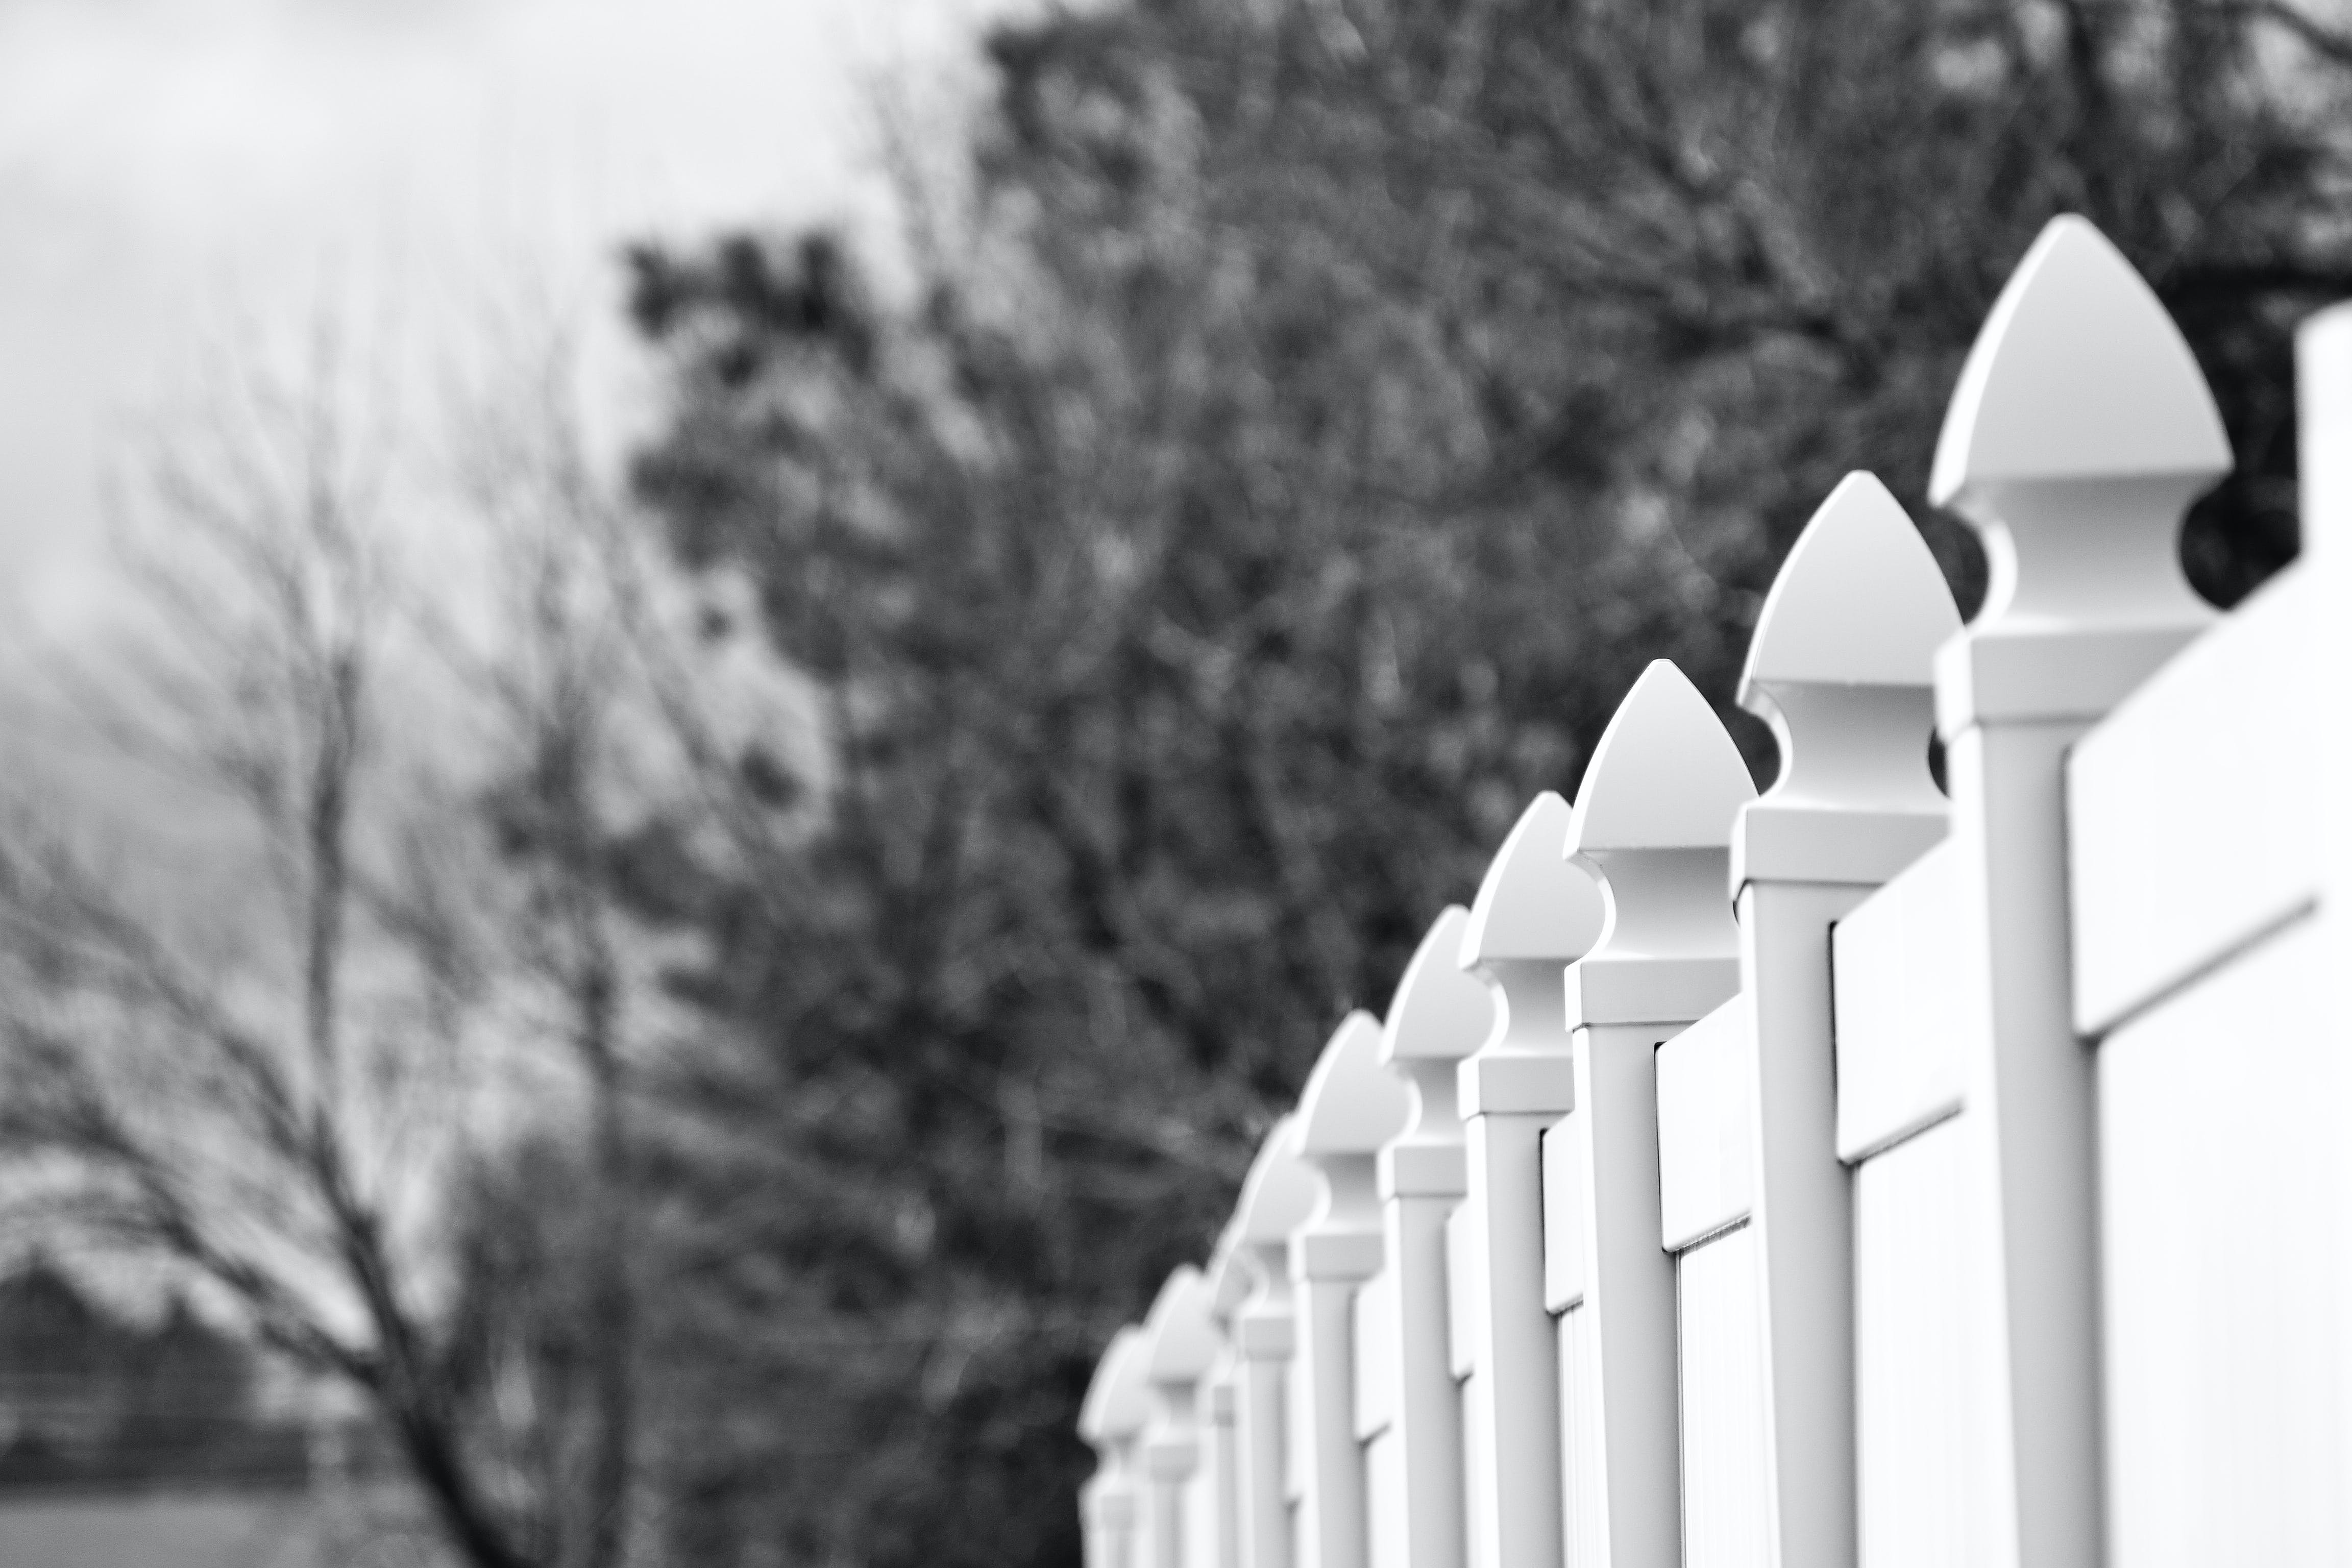 Gray Scale Photo of White Fence